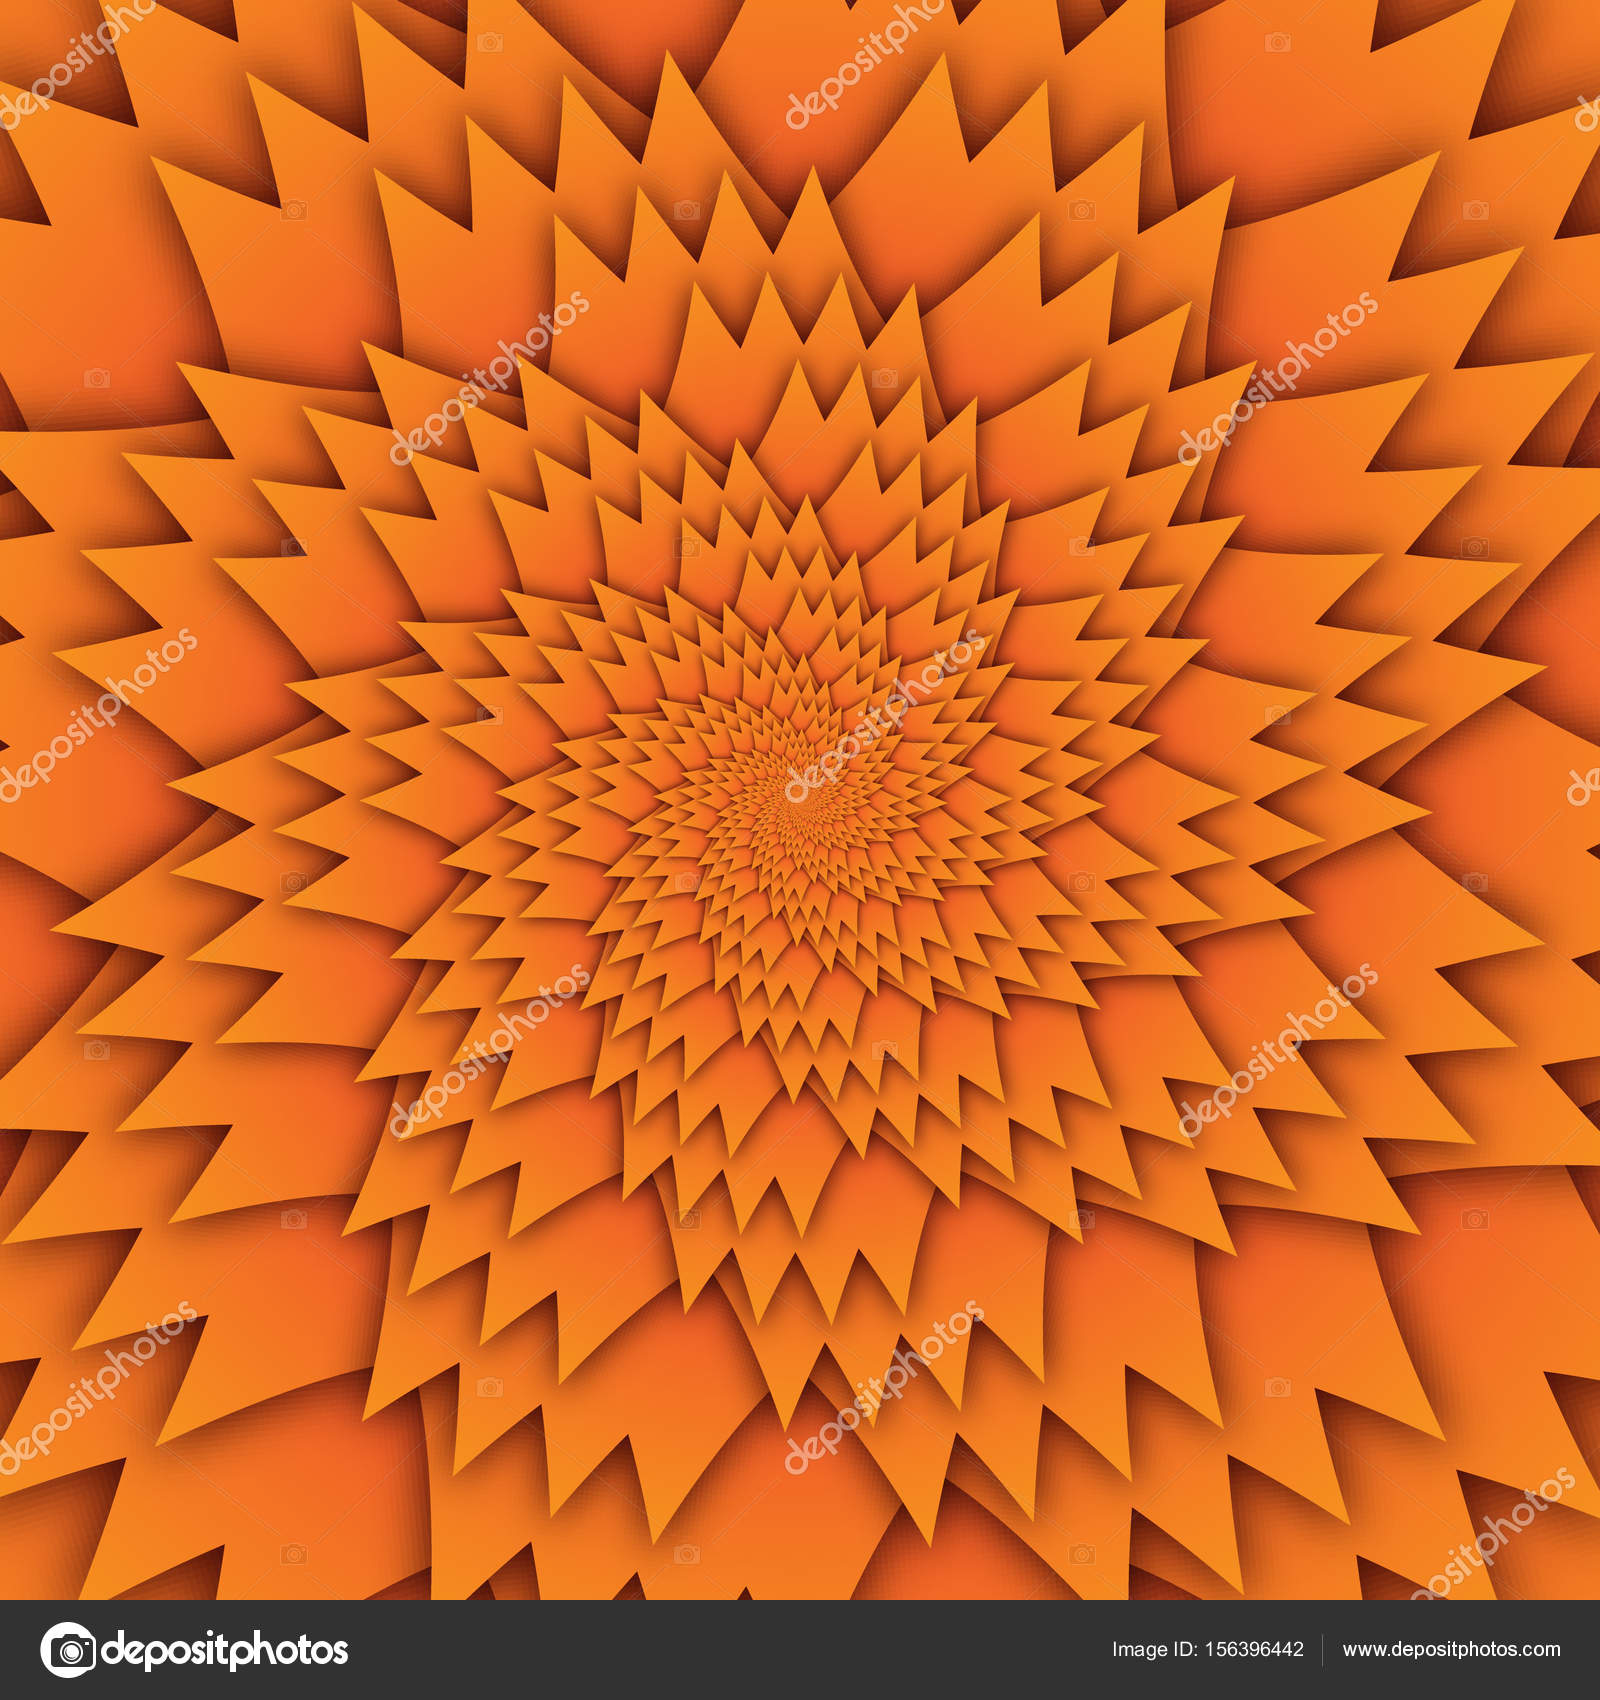 abstract star mandala decorative pattern orange background square